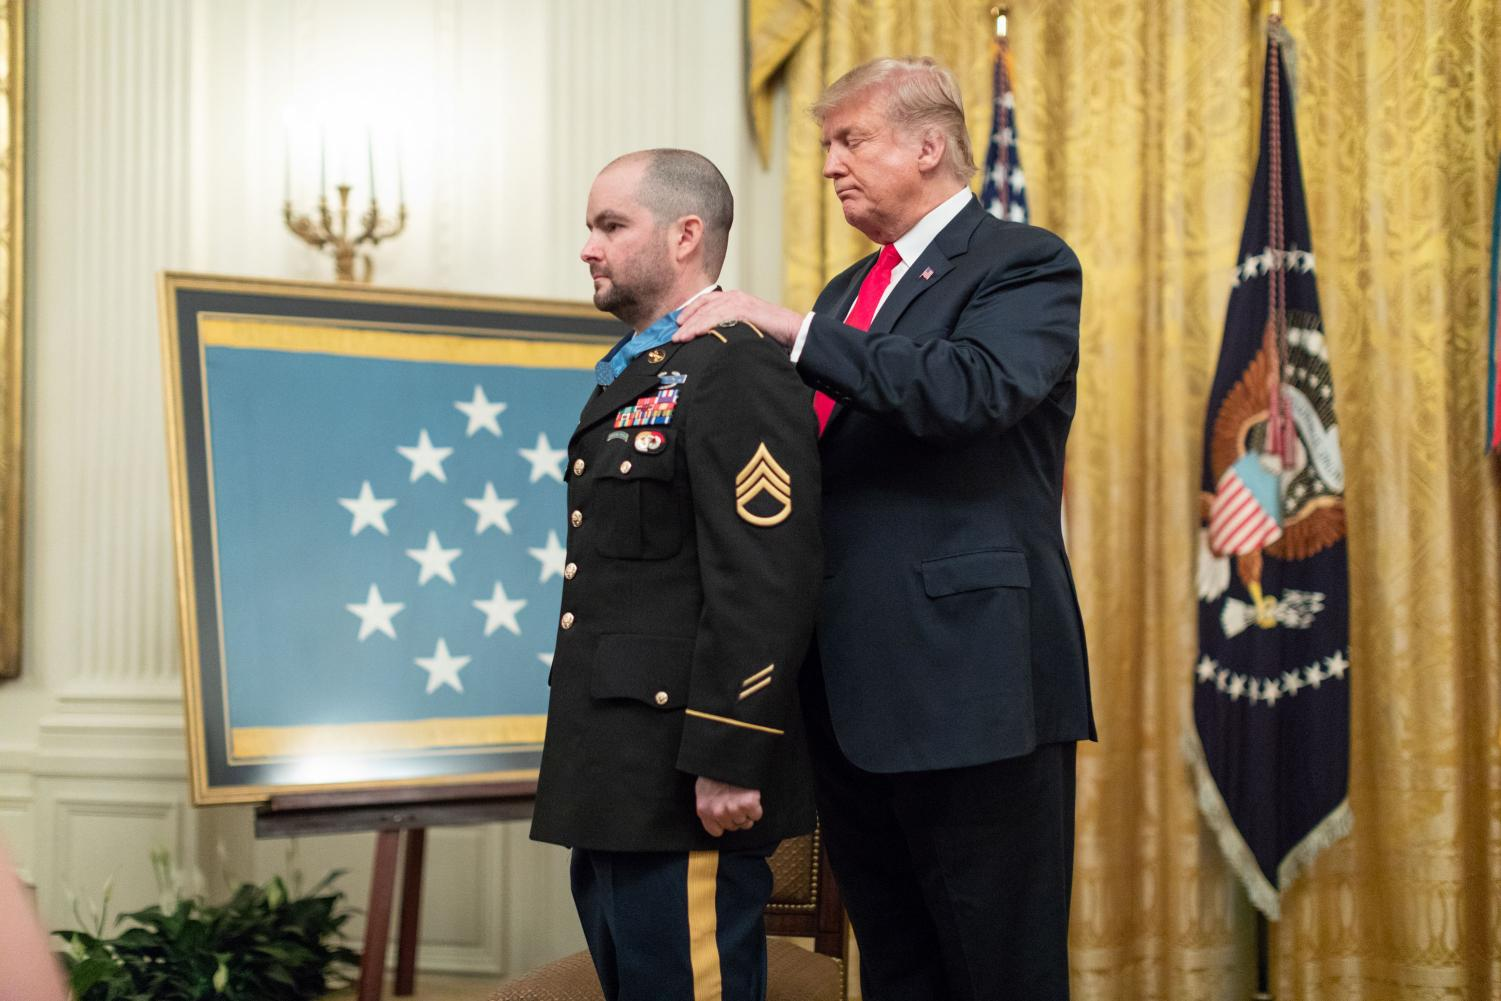 Staff Sergeant Ronald Shurer, a 1997 RHS graduate, receives the Medal of Honor from President Trump.